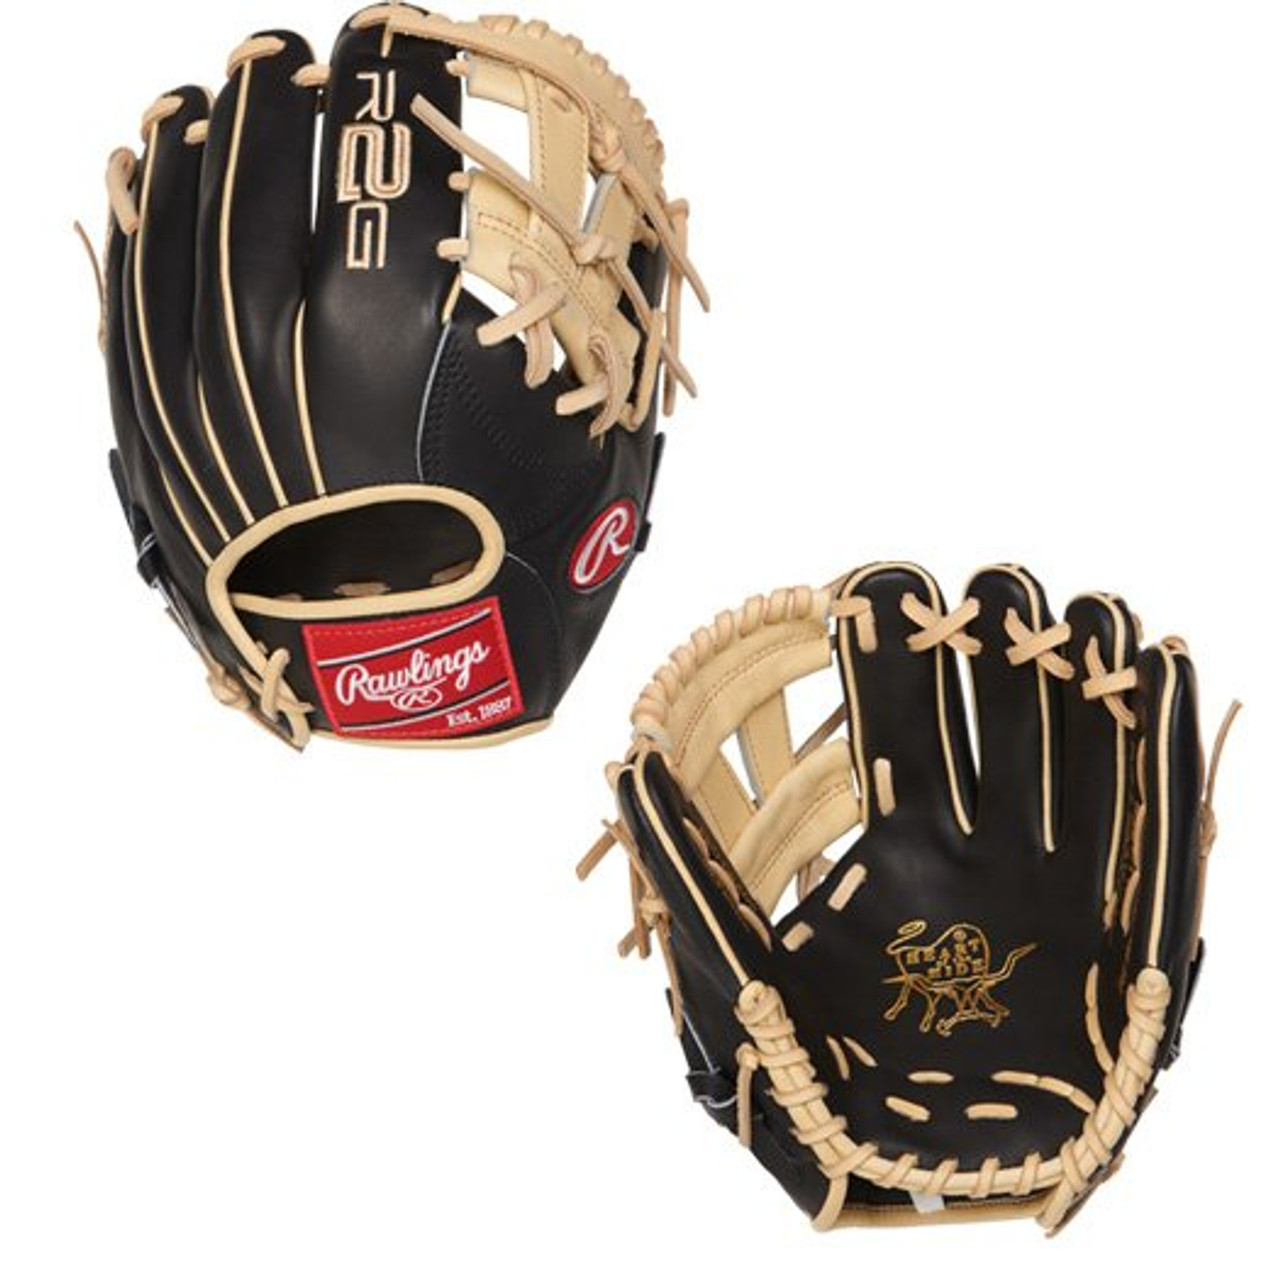 Rawlings Heart Of The Hide R2g Baseball Glove 11 25 Pror882 7bc